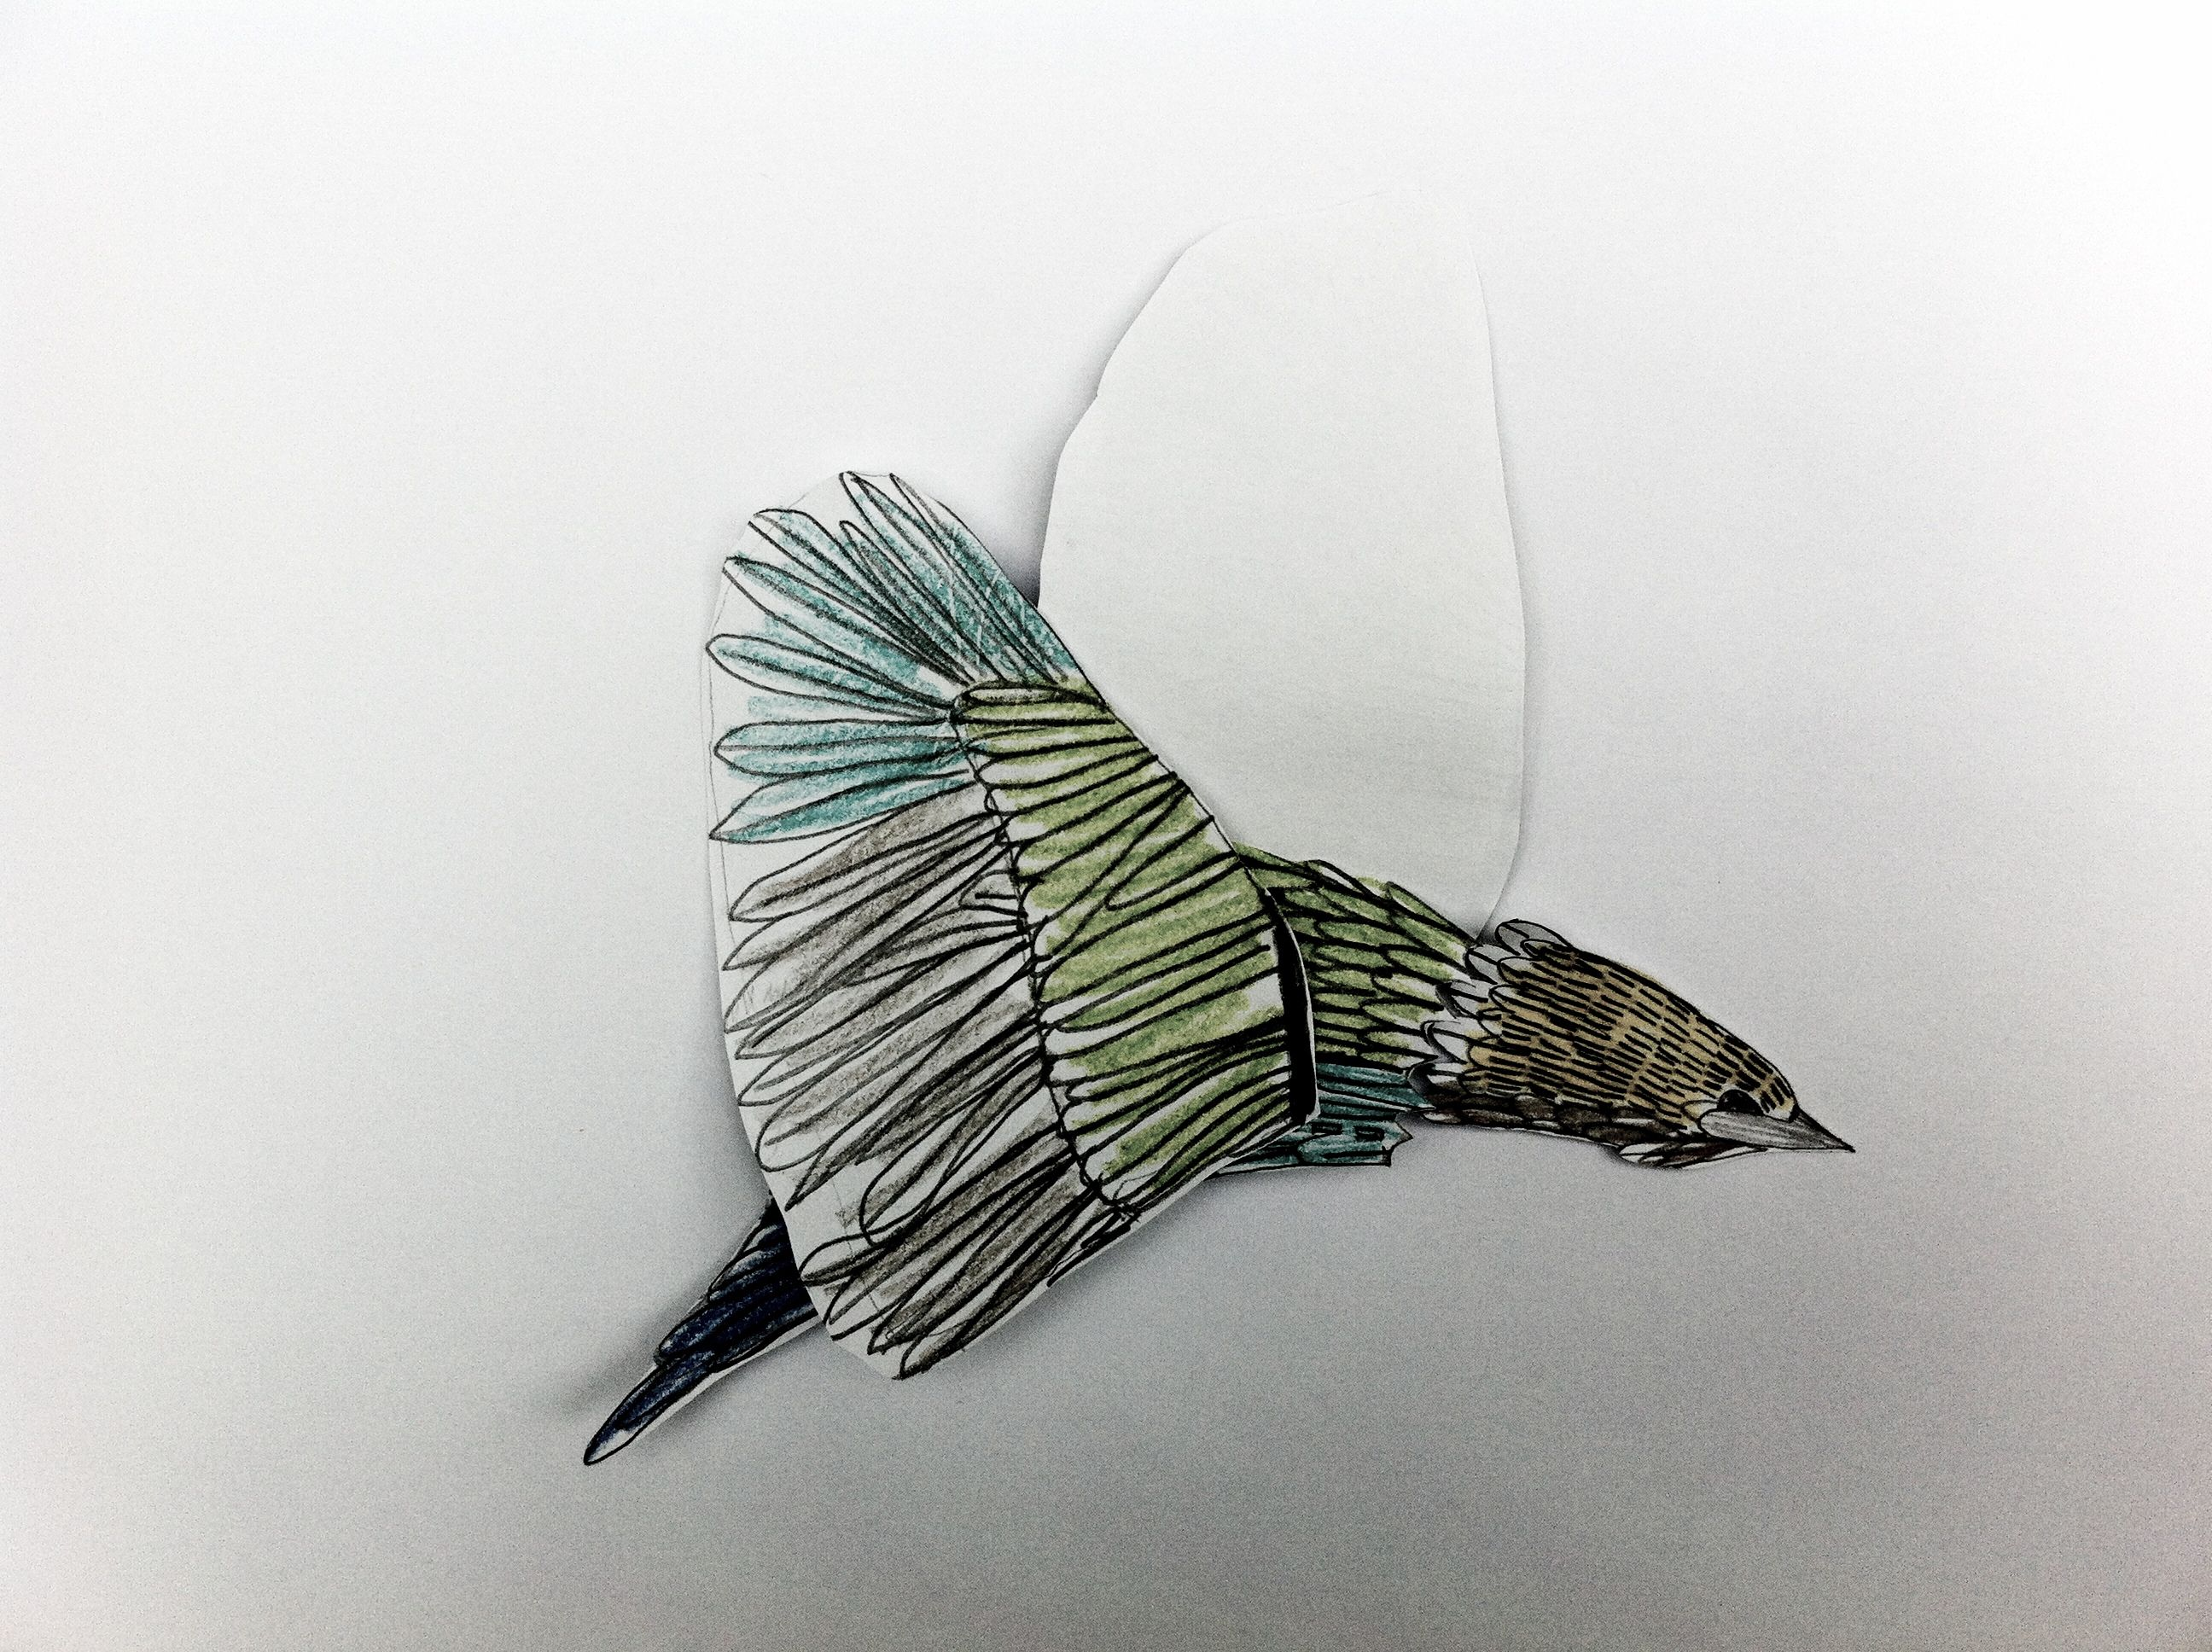 Bird model for a baby's mobile by Willy Ollero